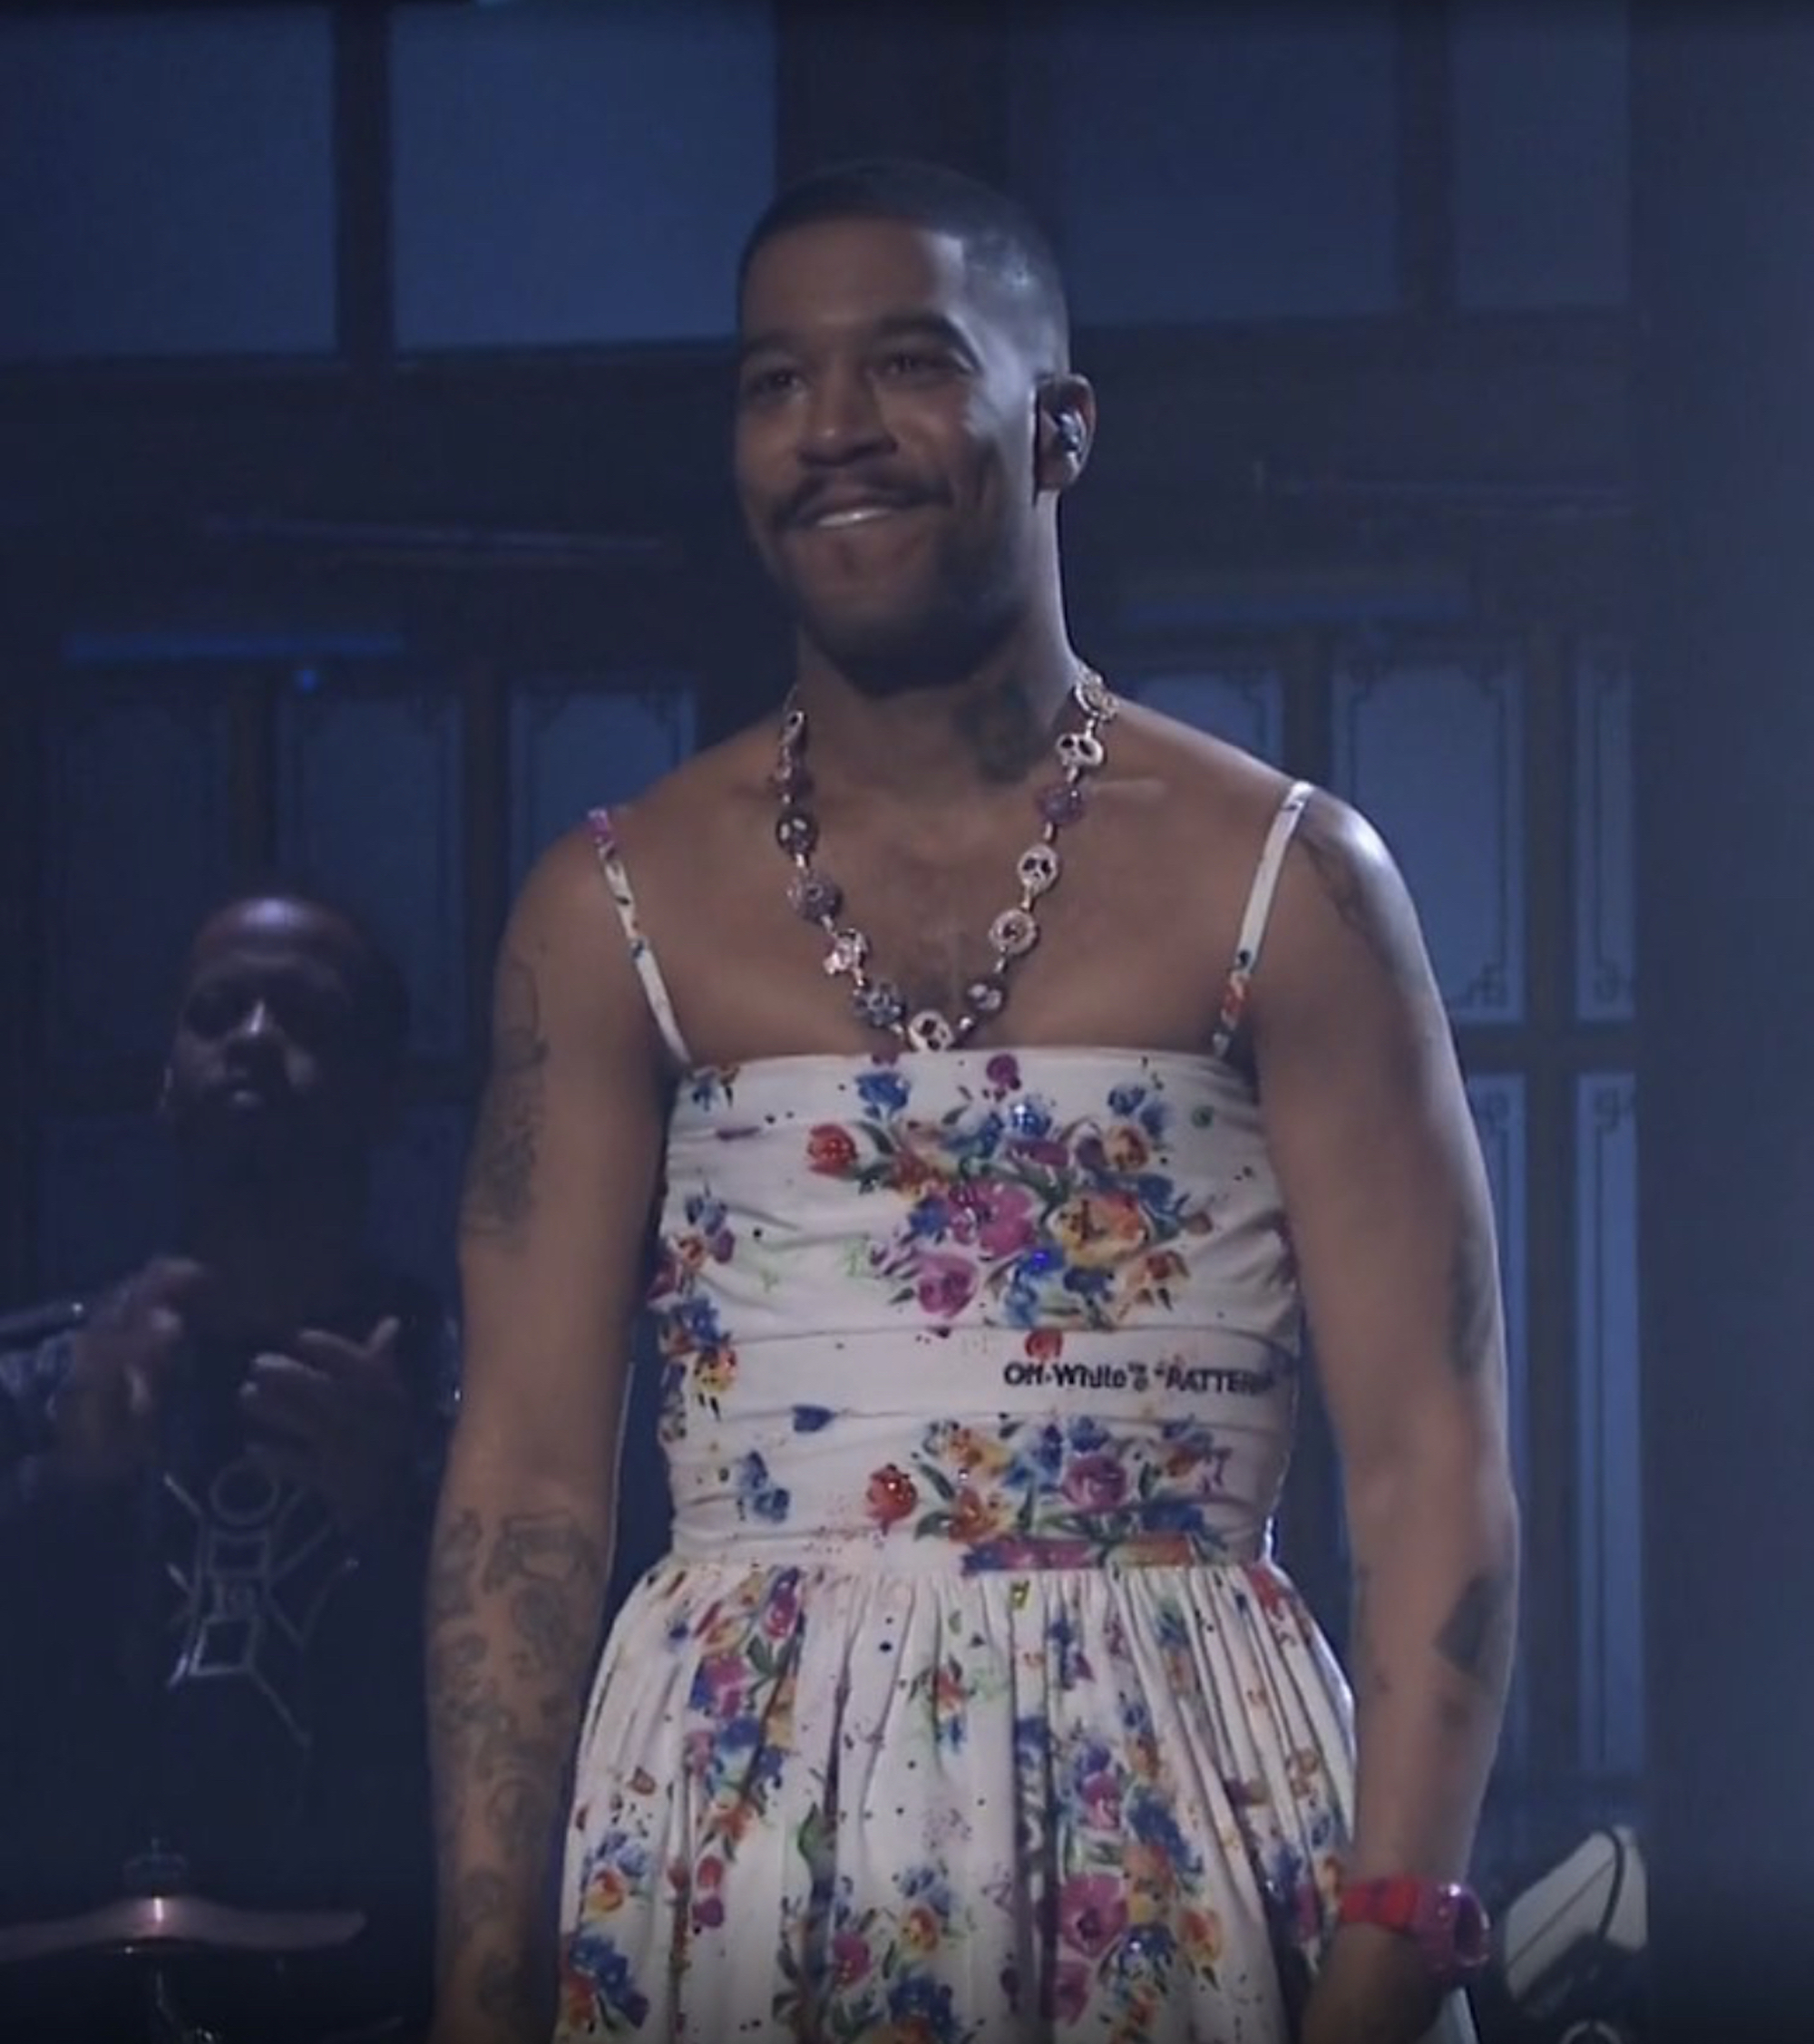 Wonderland looks of the week Kid Cudi on SNL